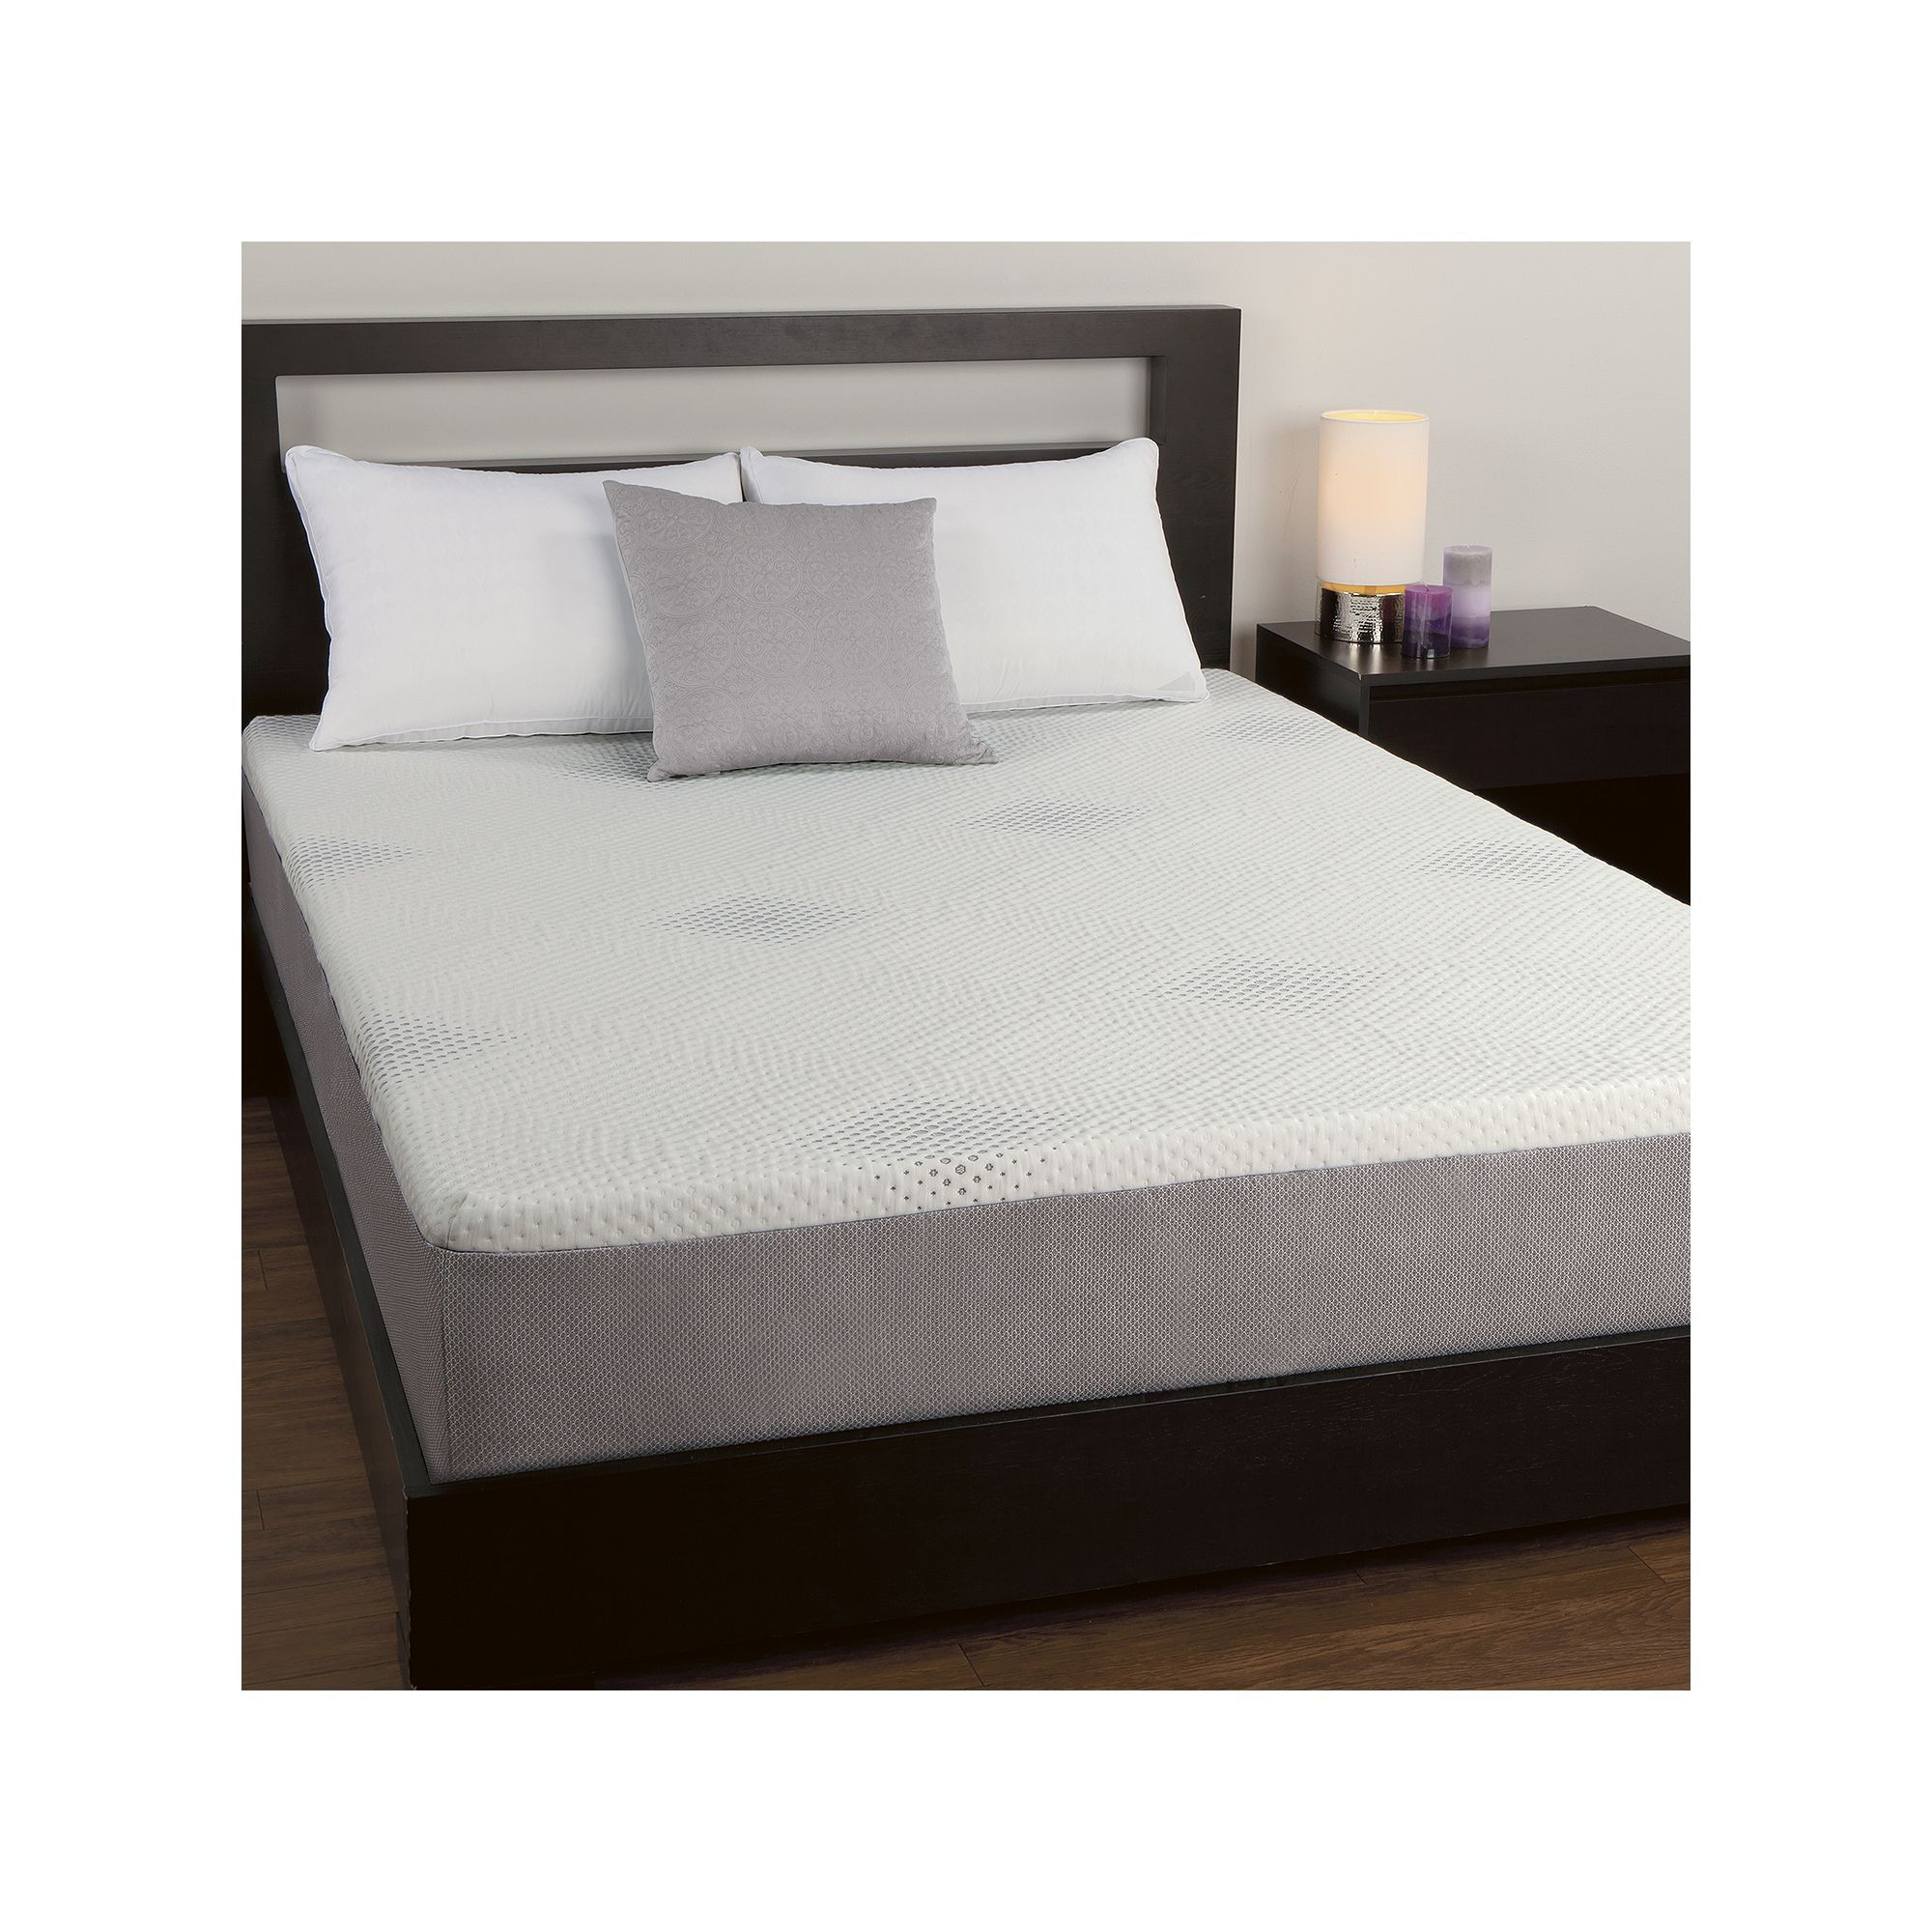 Sealy 10 In Queen Memory Foam Mattress 60 X 80 Products